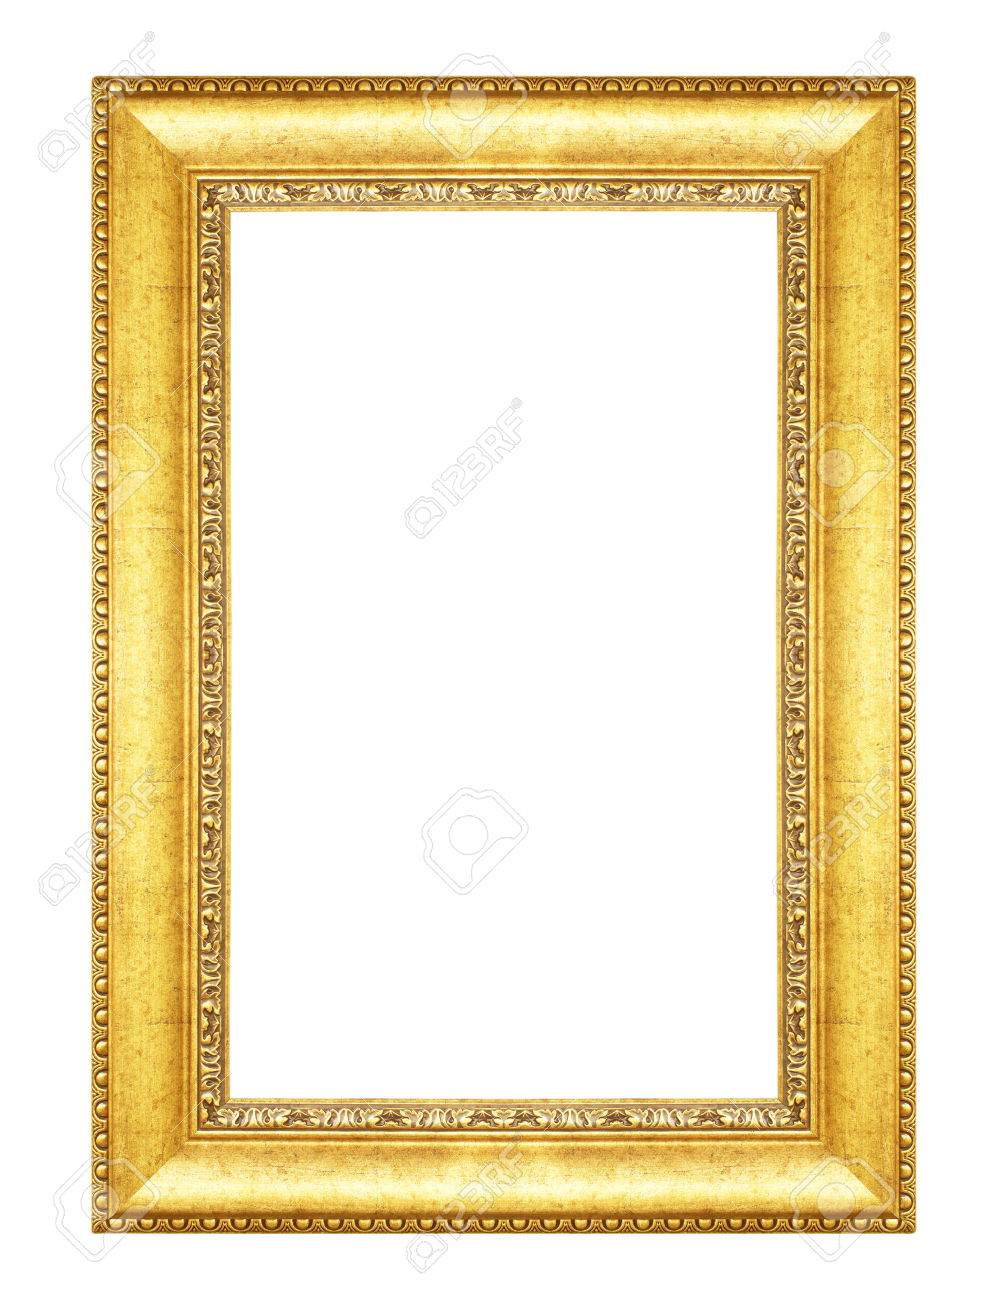 Old Antique Vintage Gold Frames Isolated On White Background Stock